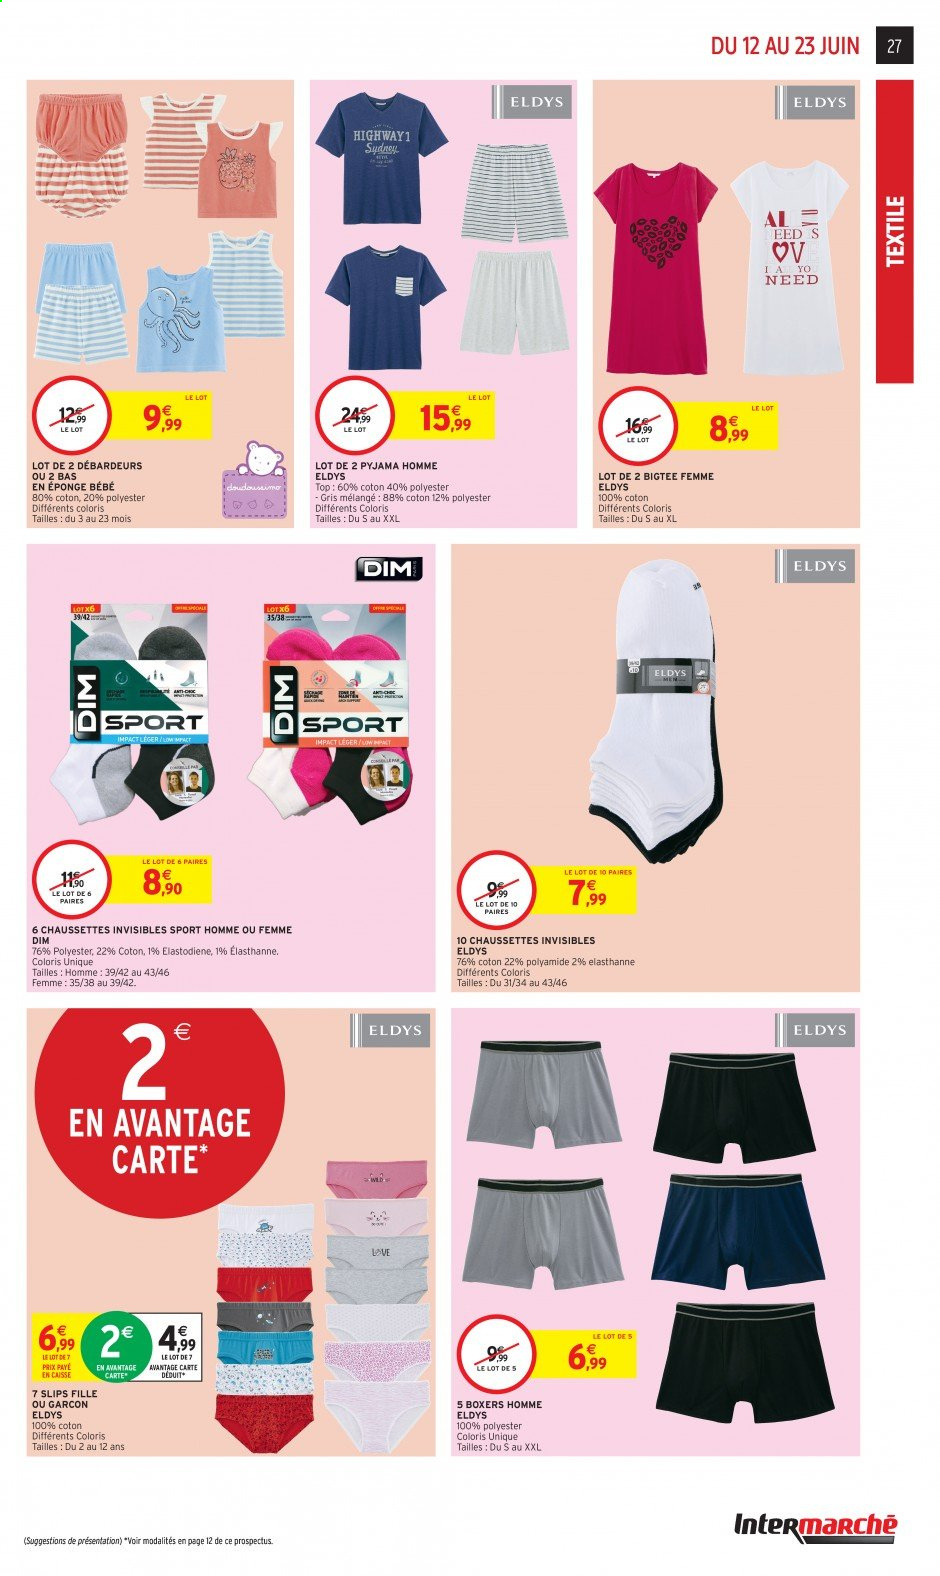 Catalogue Intermarché - 12.06.2019 - 23.06.2019. Page 27.